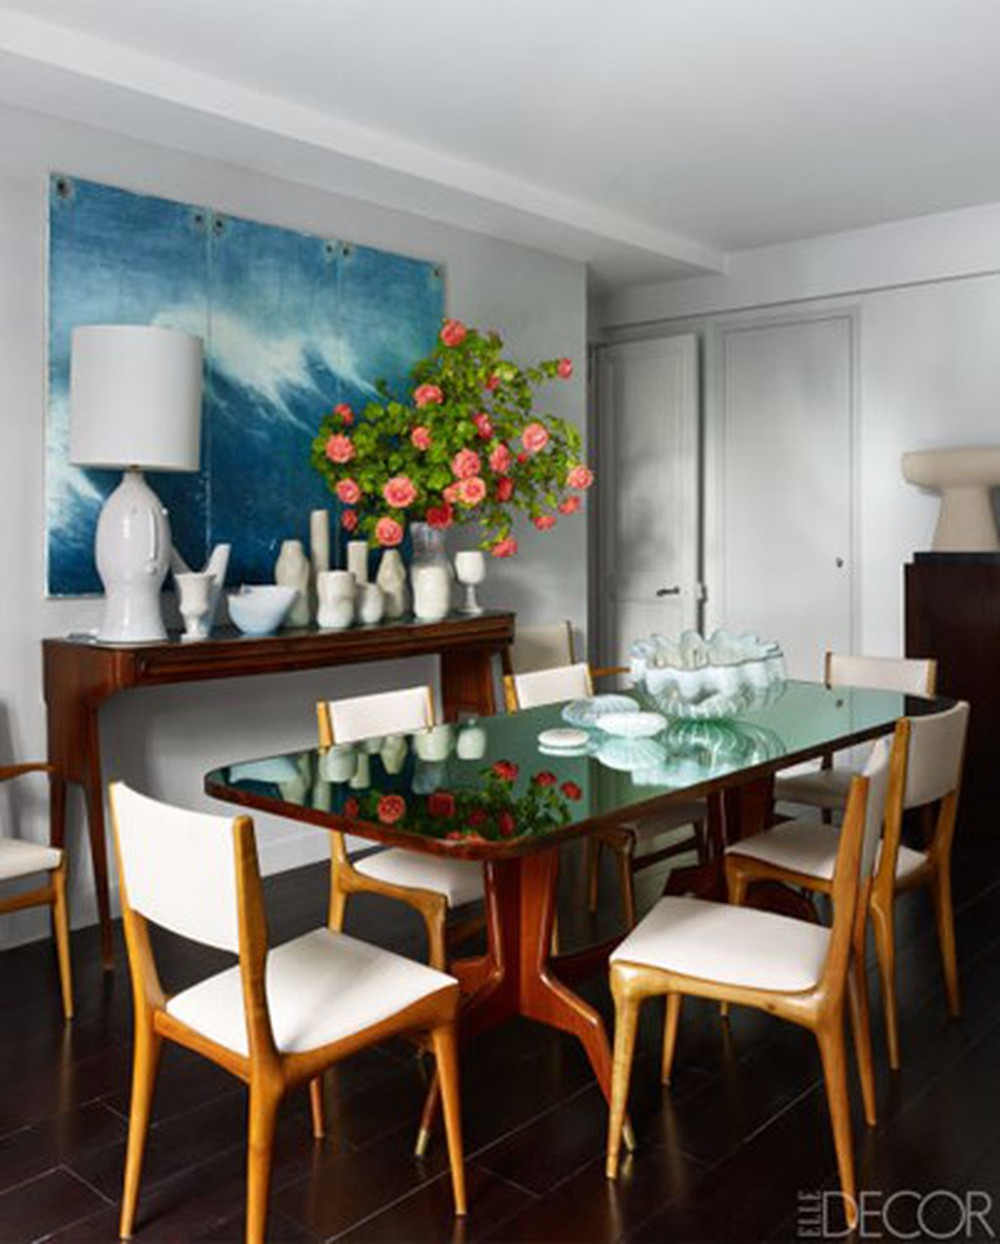 7 of the Most Chic Interiors in Paris 03 chic interiors in paris 7 of the Most Chic Interiors in Paris 7 of the Most Chic Interiors in Paris 03